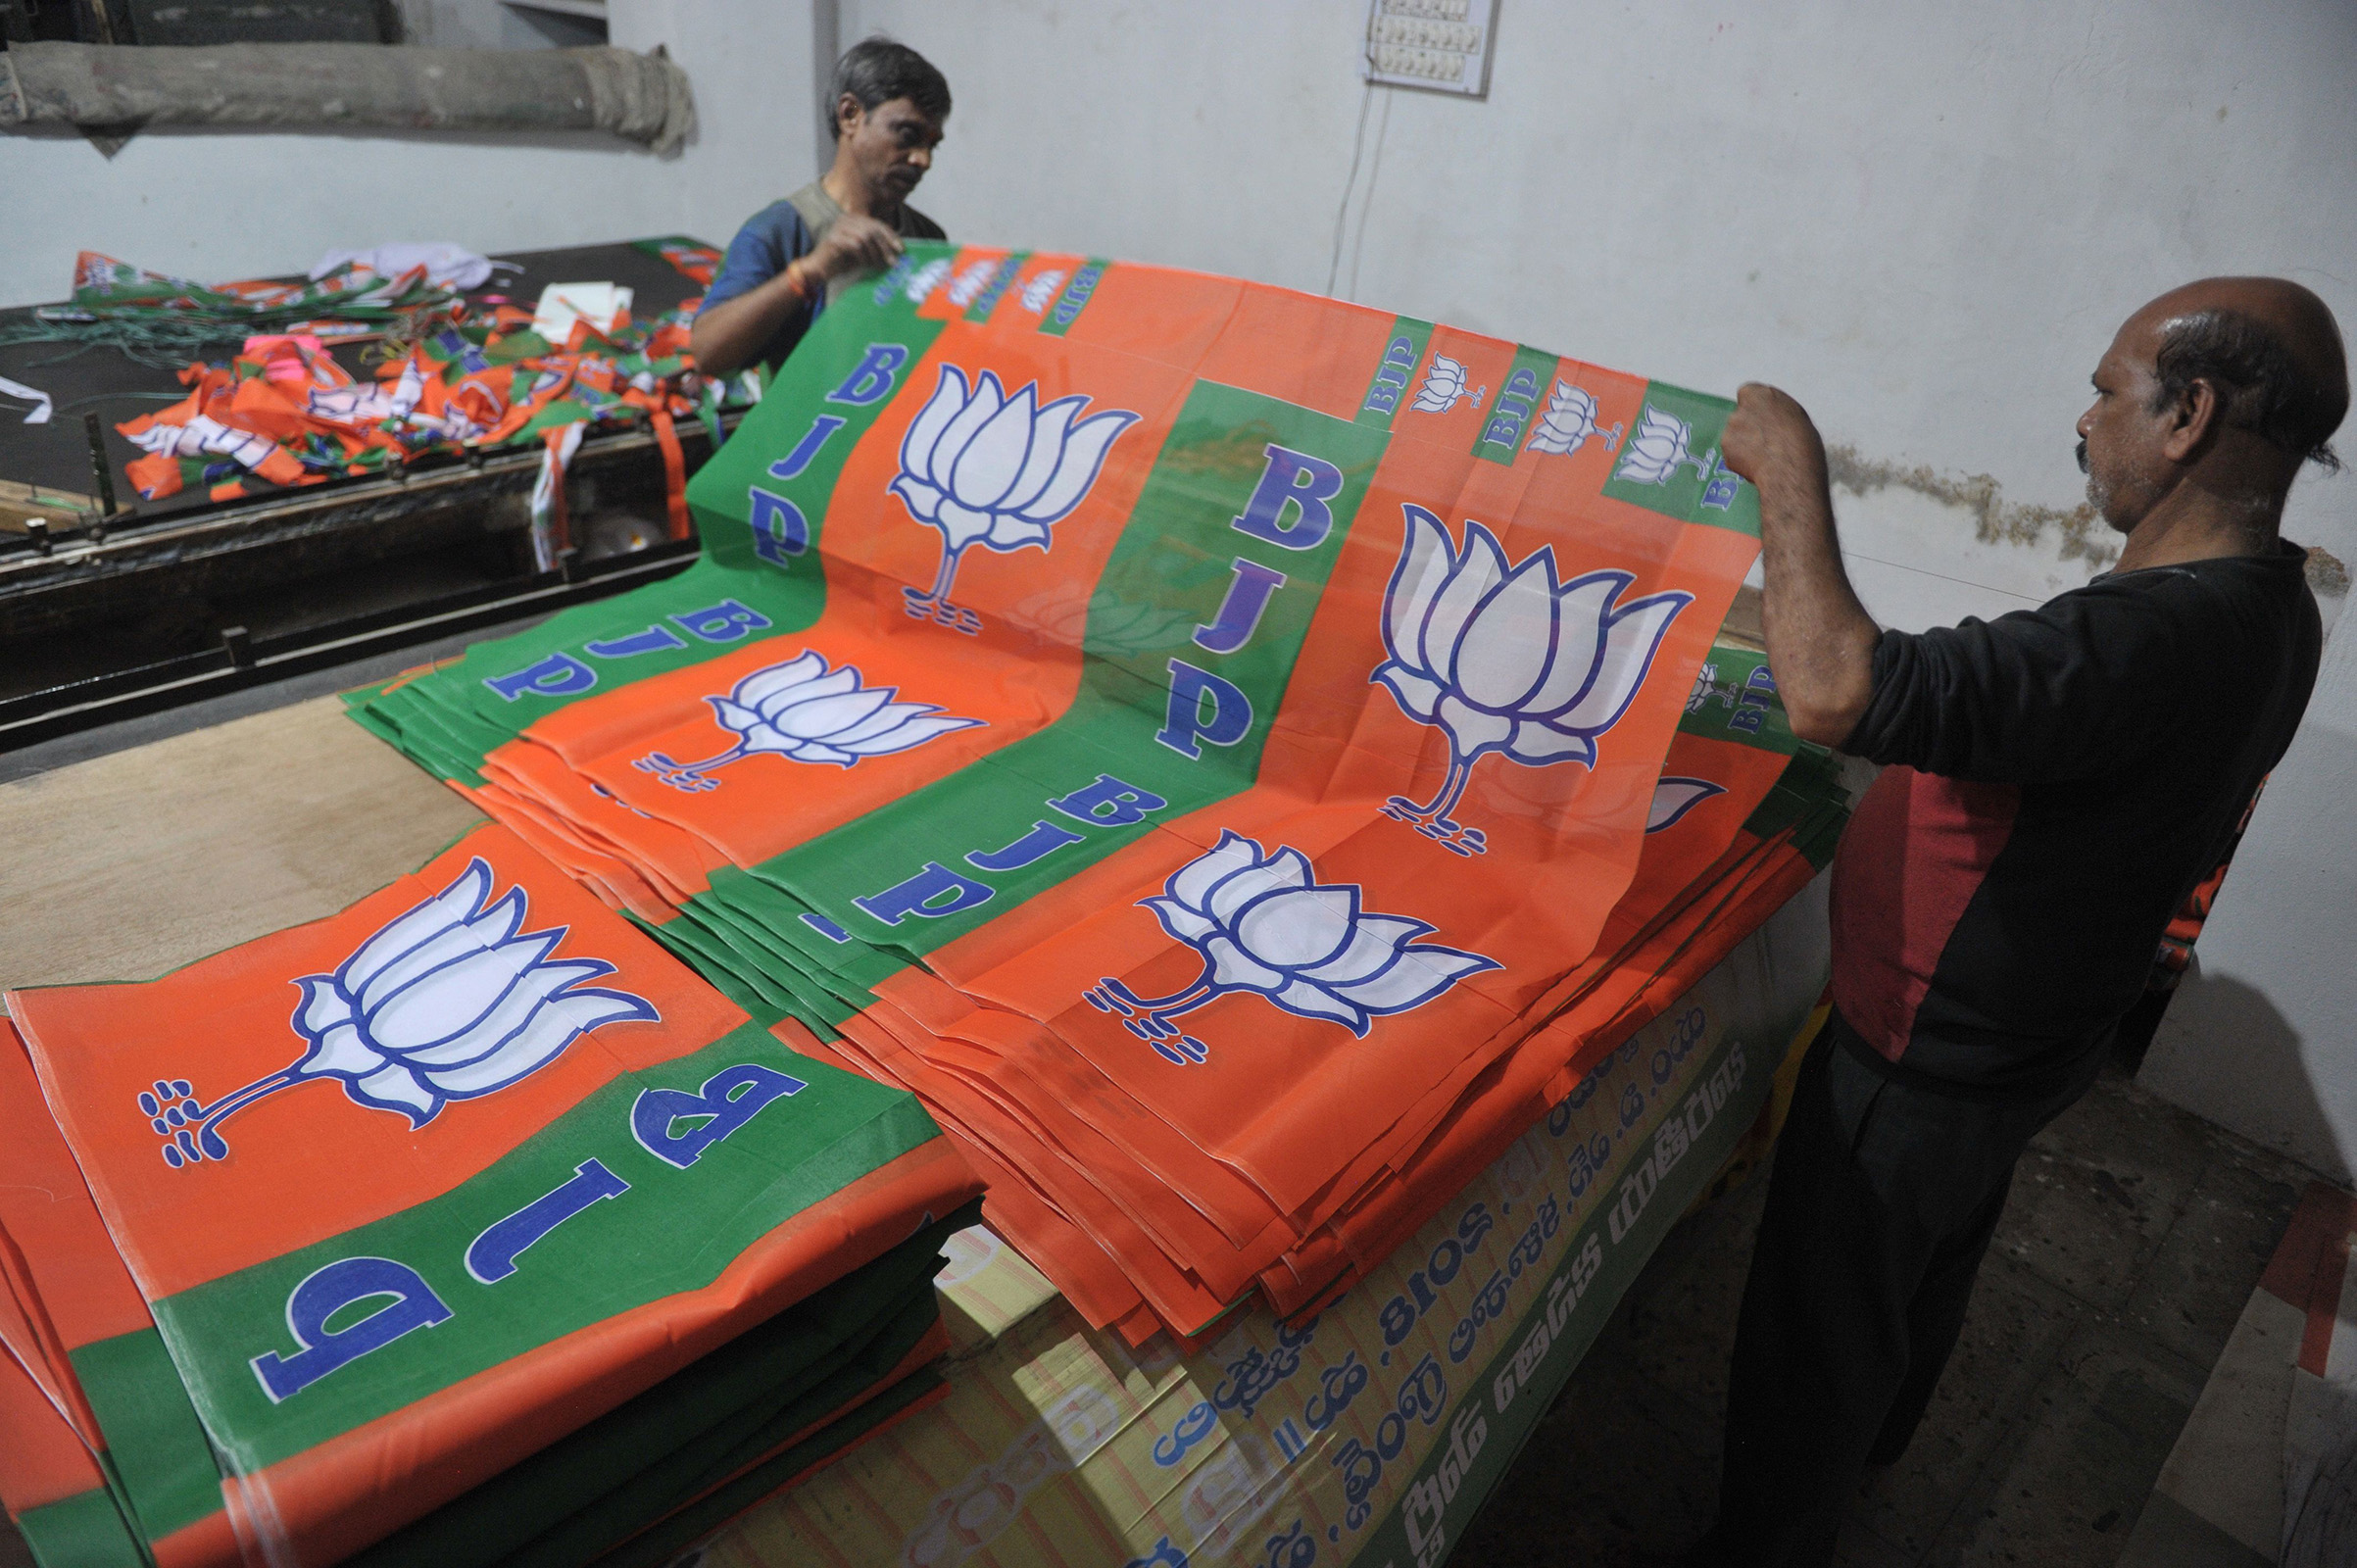 Indian labourers work at a workshop making Bharatiya Janata Party (BJP) election campaign banners for the Telangana state legislative assembly elections in Hyderabad.